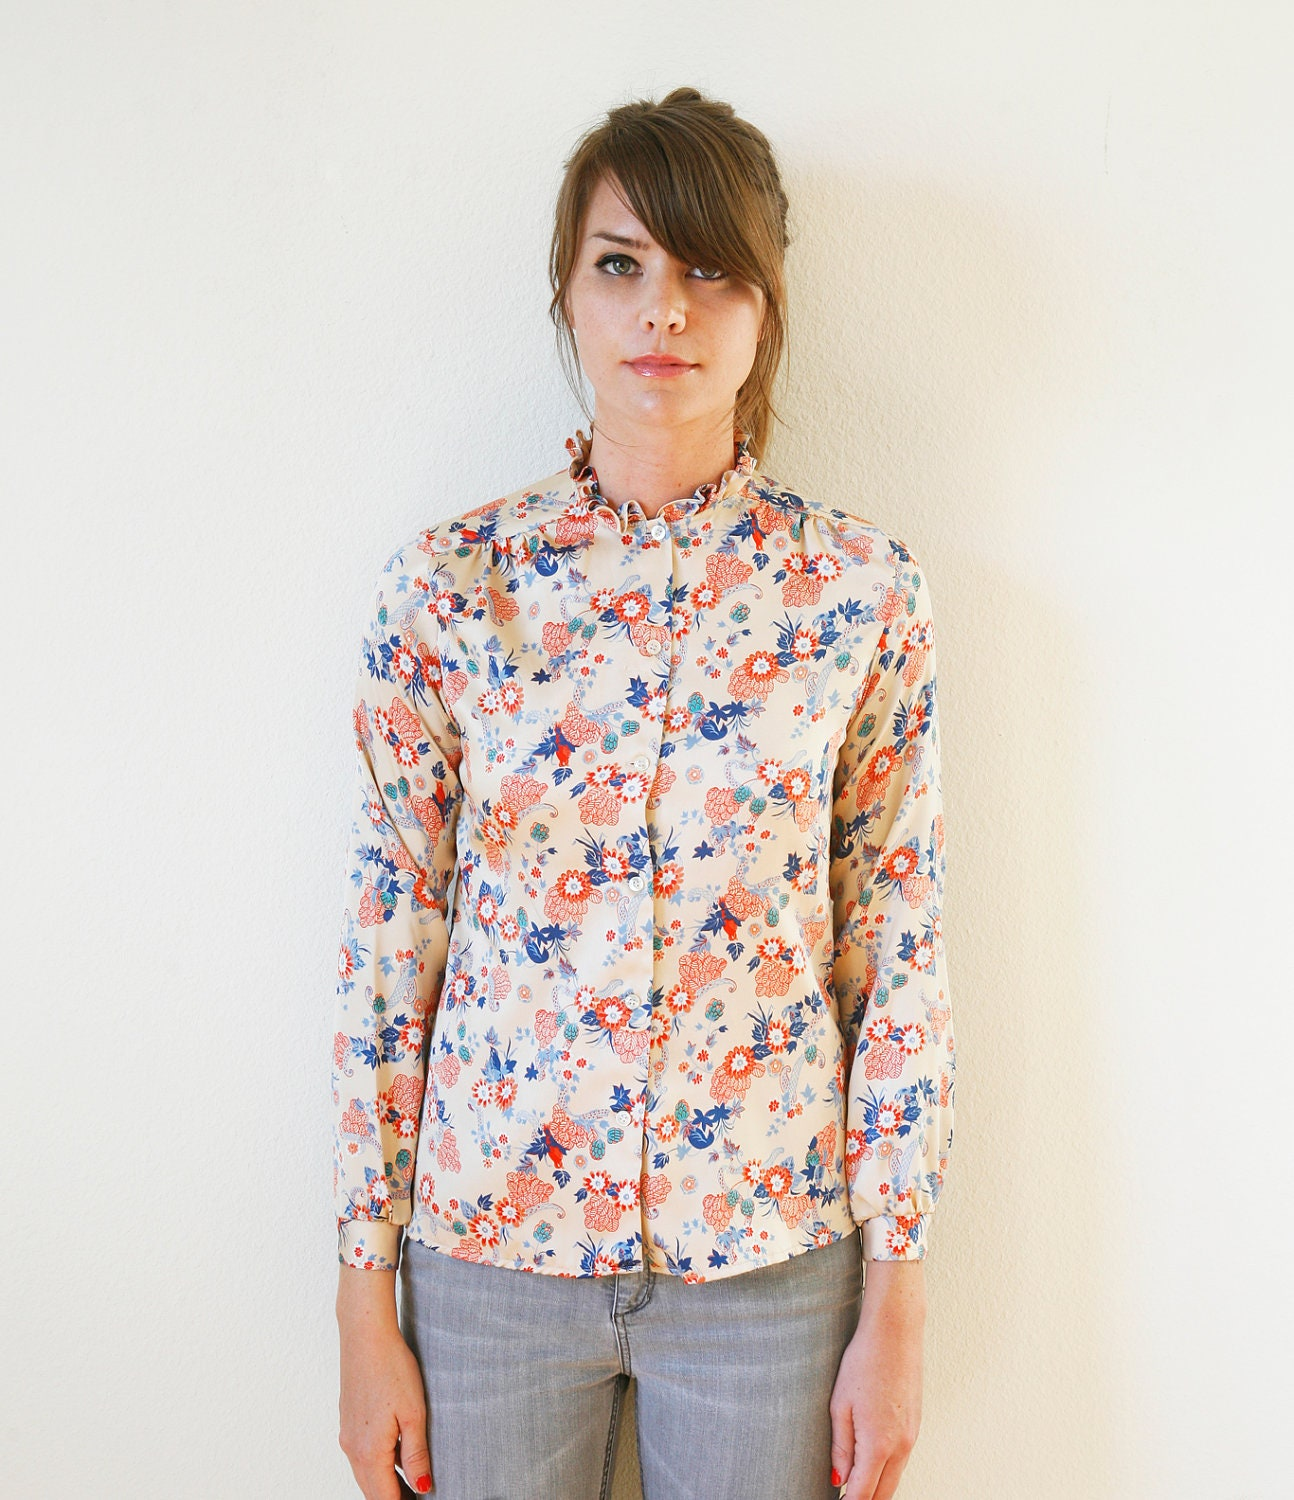 Chinoiserie Asian Floral Print Blouse Vintage 70s Long Sleeves Shirt Ruffle Collar Small to Medium - VintageReBelle